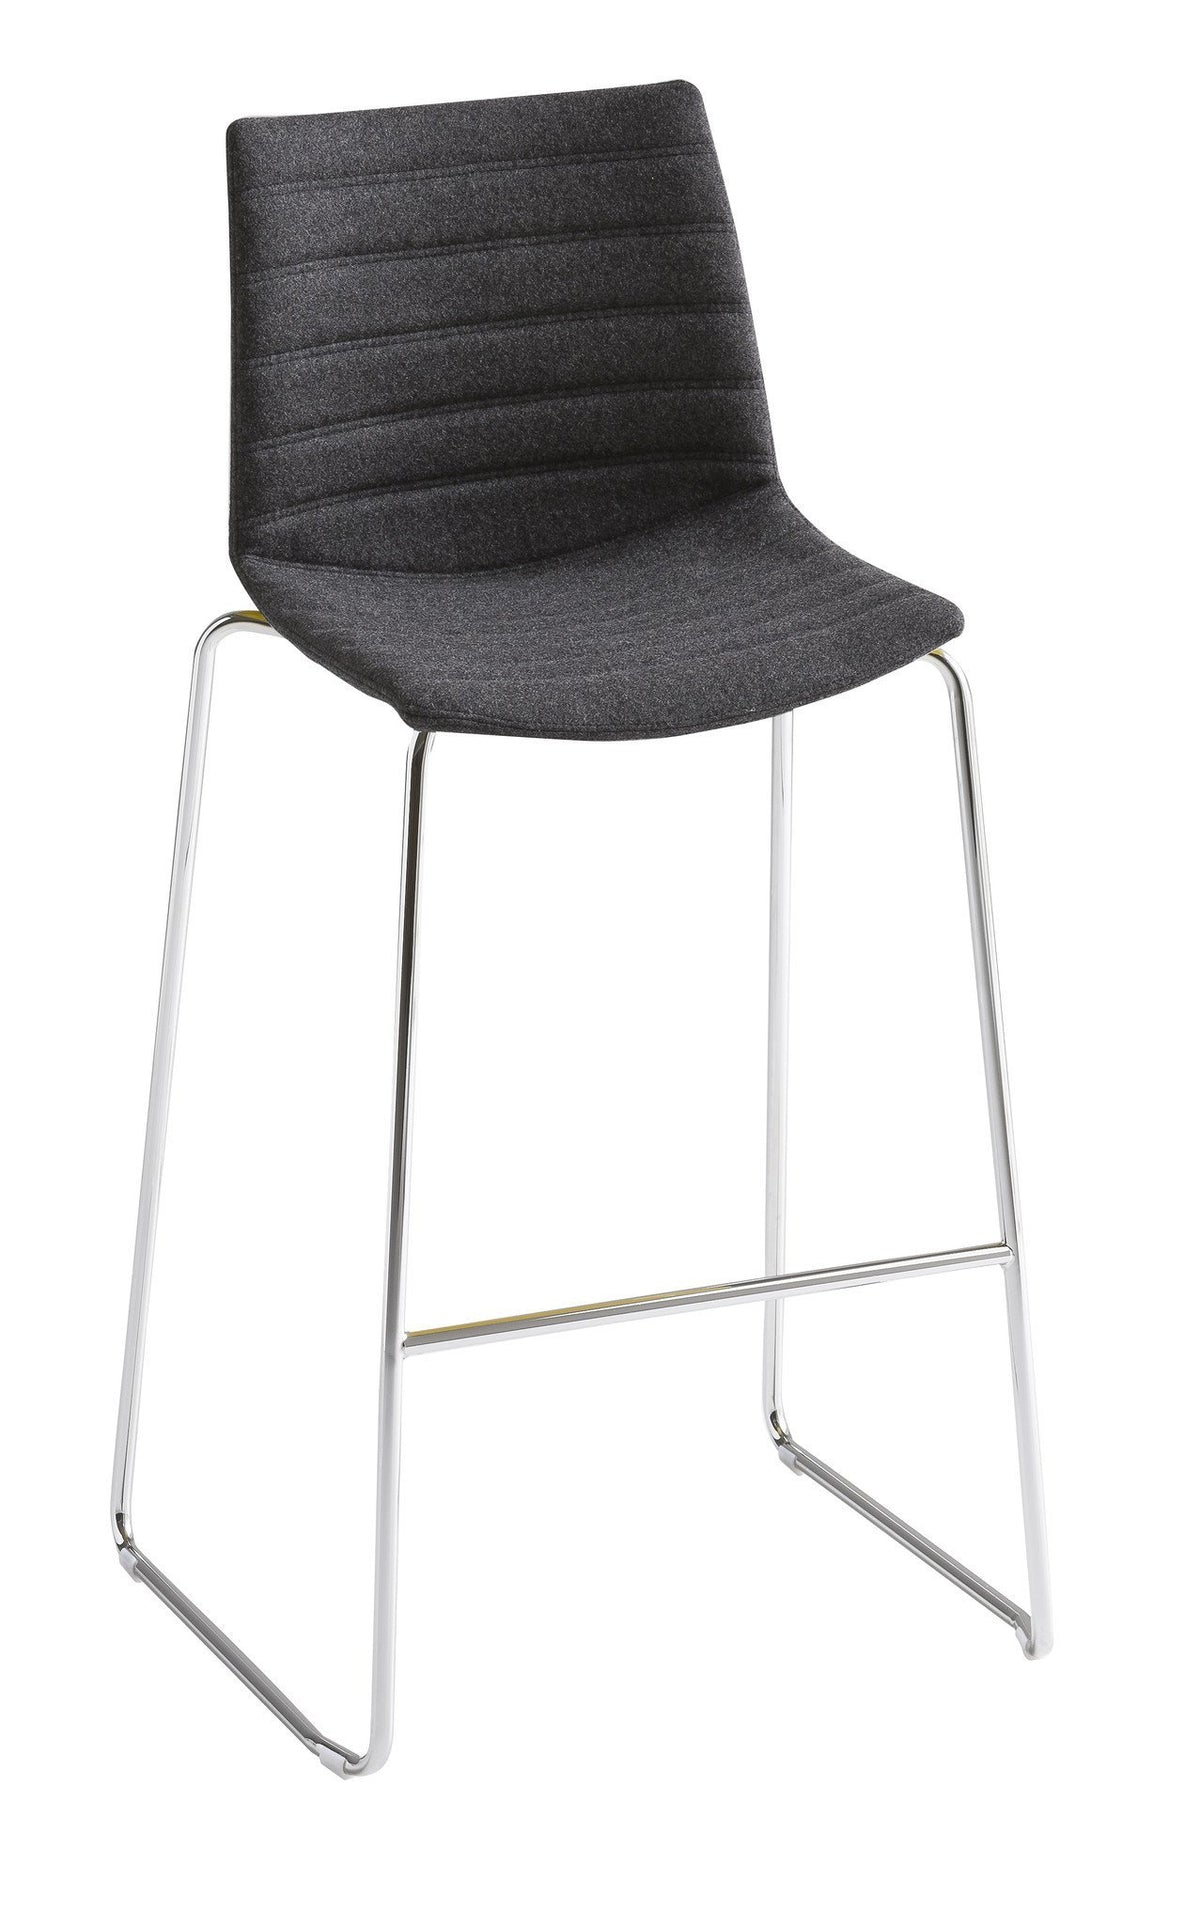 Kanvas Full High Stool c/w Sled Legs-Gaber-Contract Furniture Store